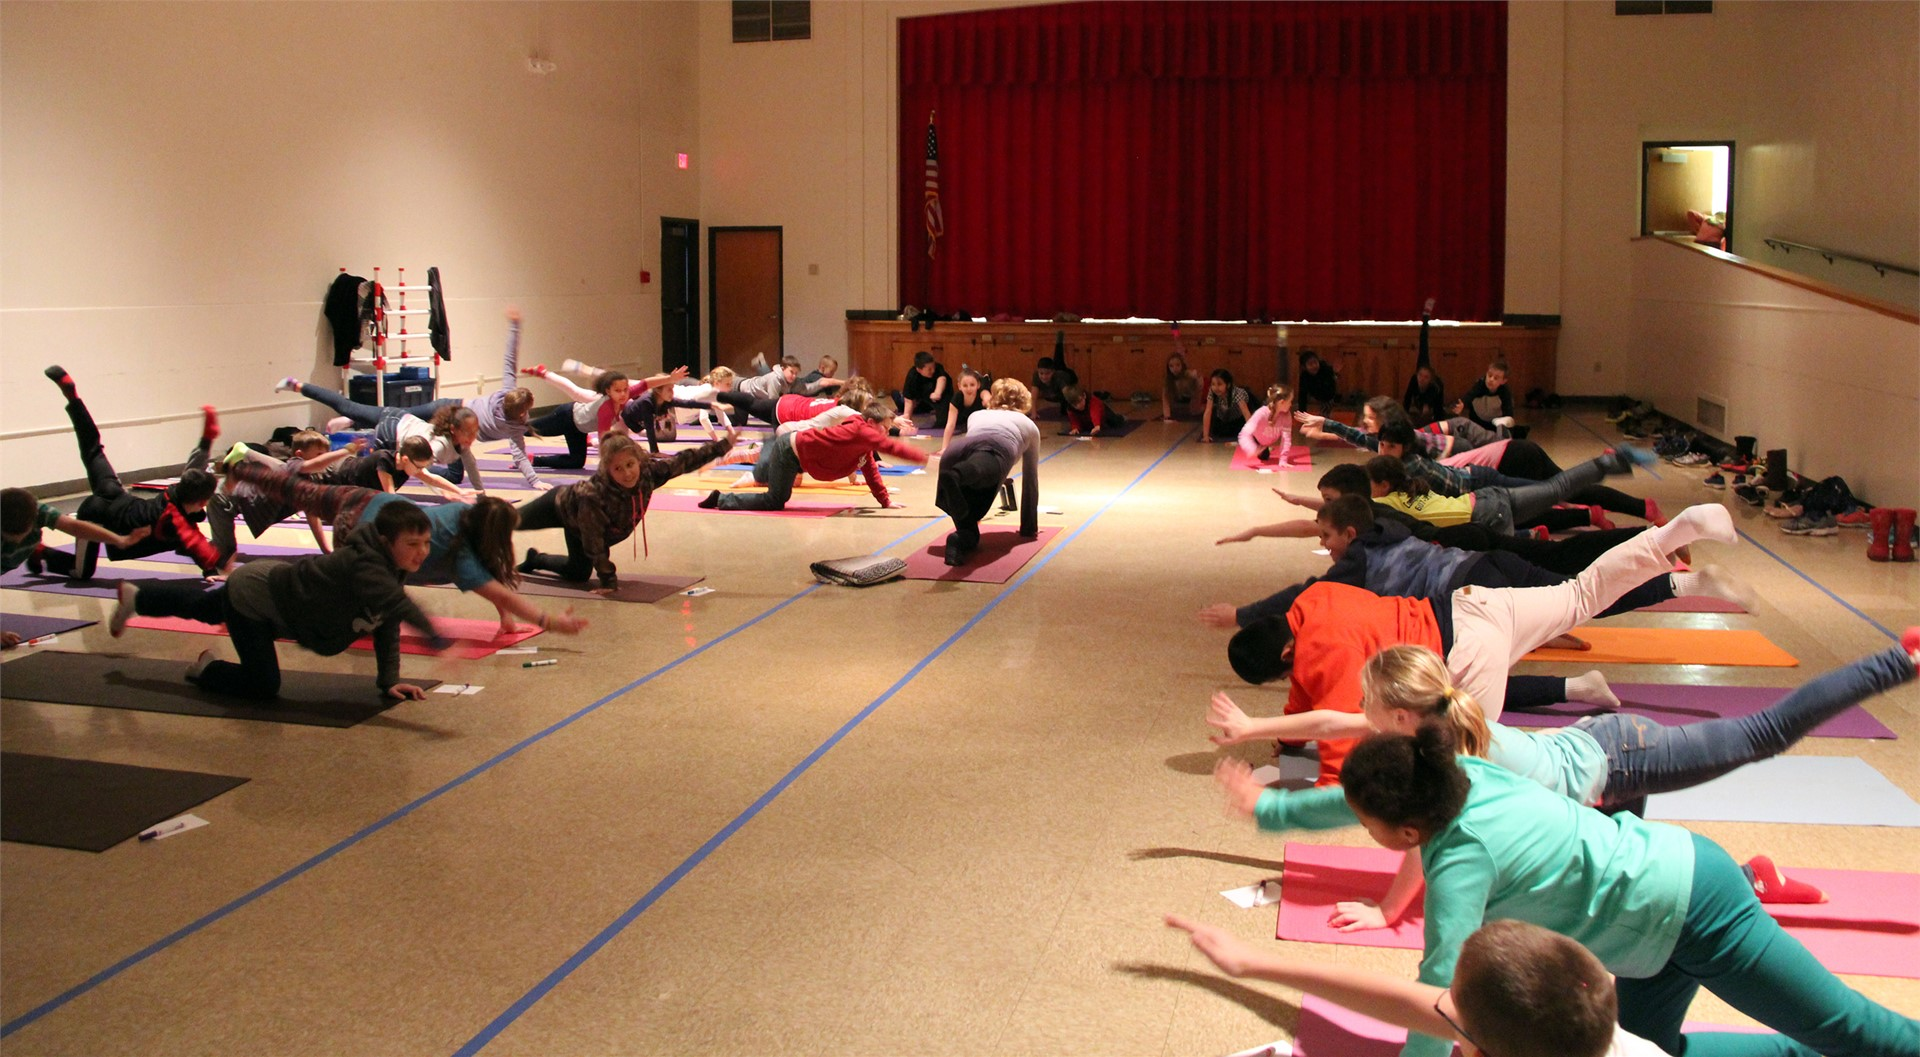 students learning yoga in auditorium